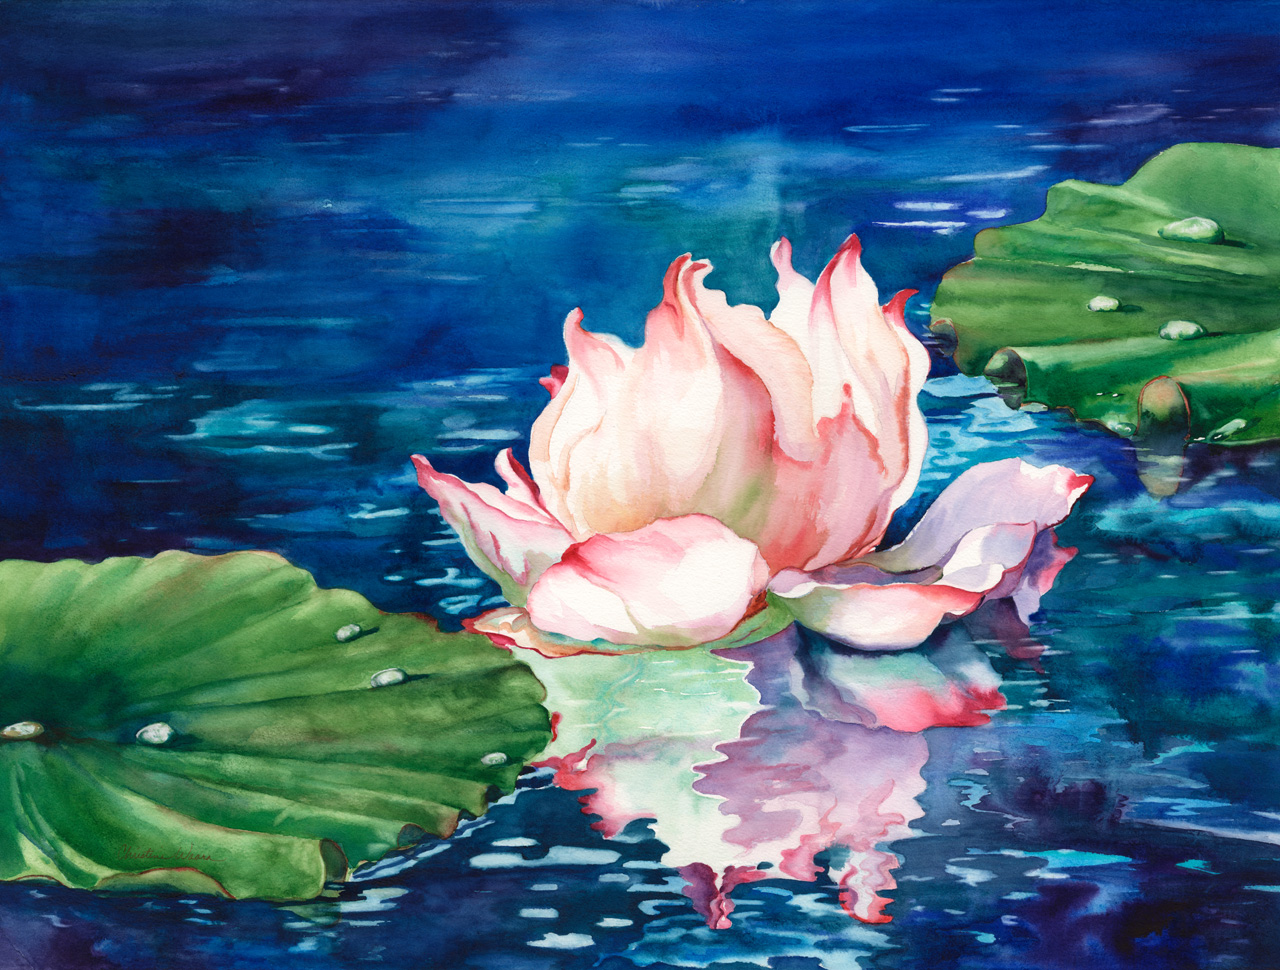 Watercolor painting of a waterlily among lily pads